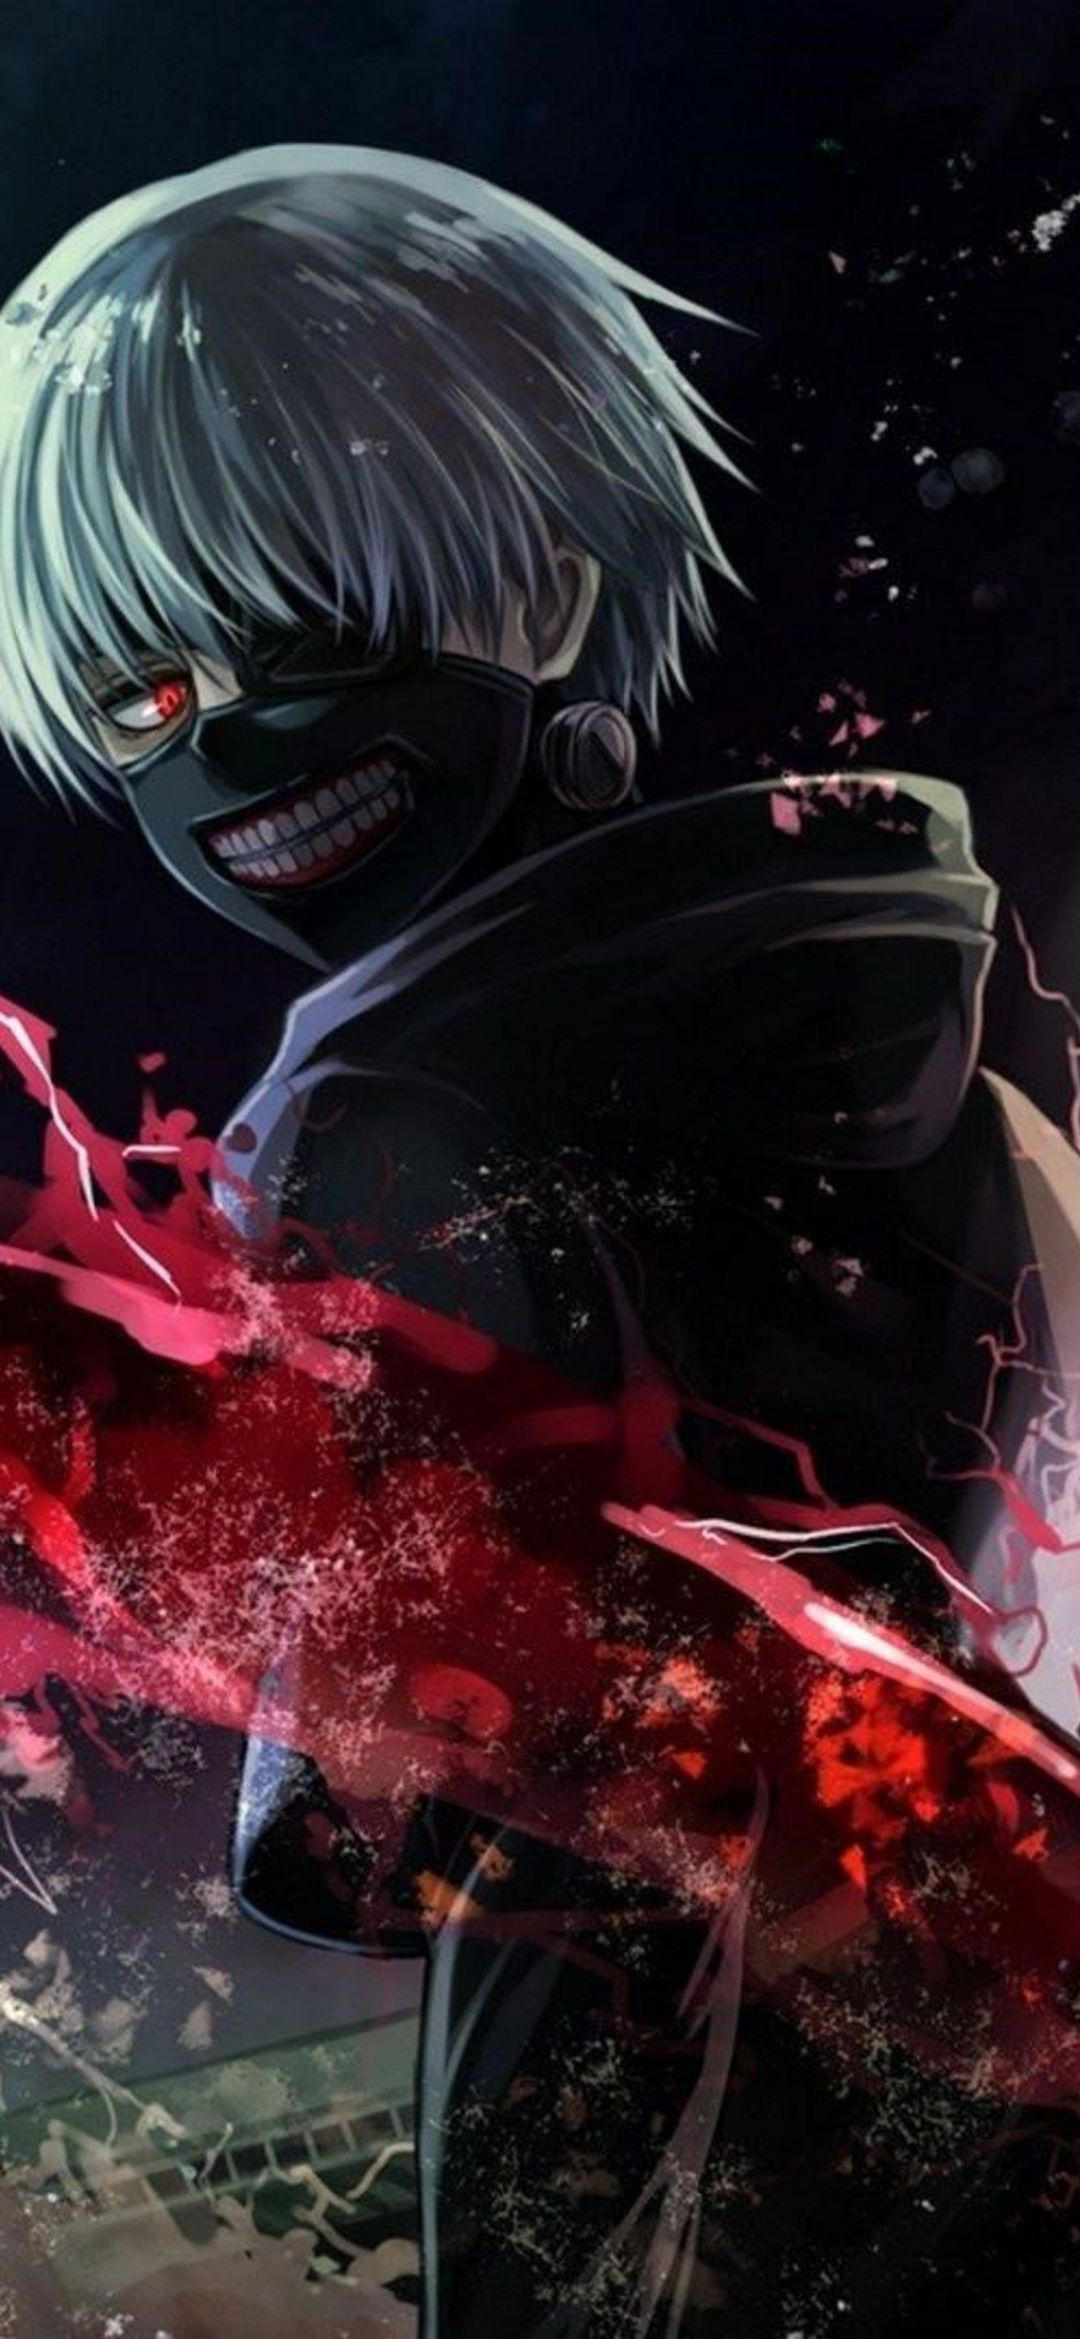 tokyo ghoul iphoneandroid iphone desktop hd backgrounds wallpapers 1080p 4k